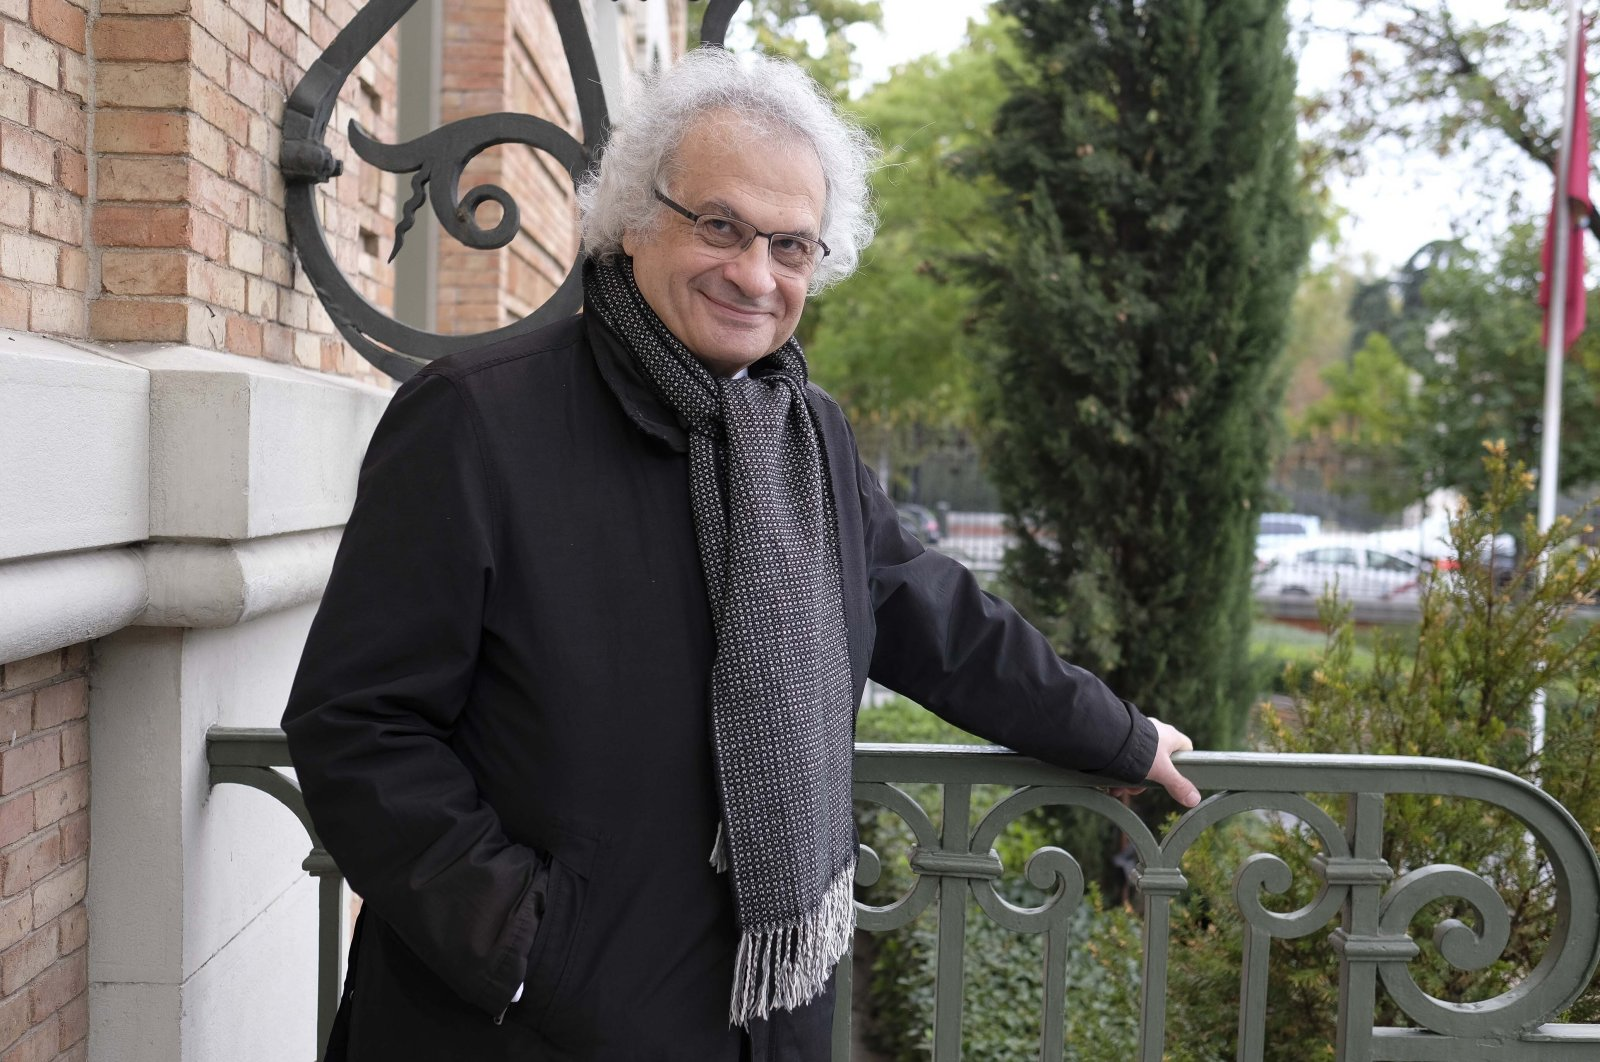 Franco-Lebanese writer Amin Maalouf poses during a portrait session in Madrid, Spain, Oct. 22, 2019. (Getty Images)